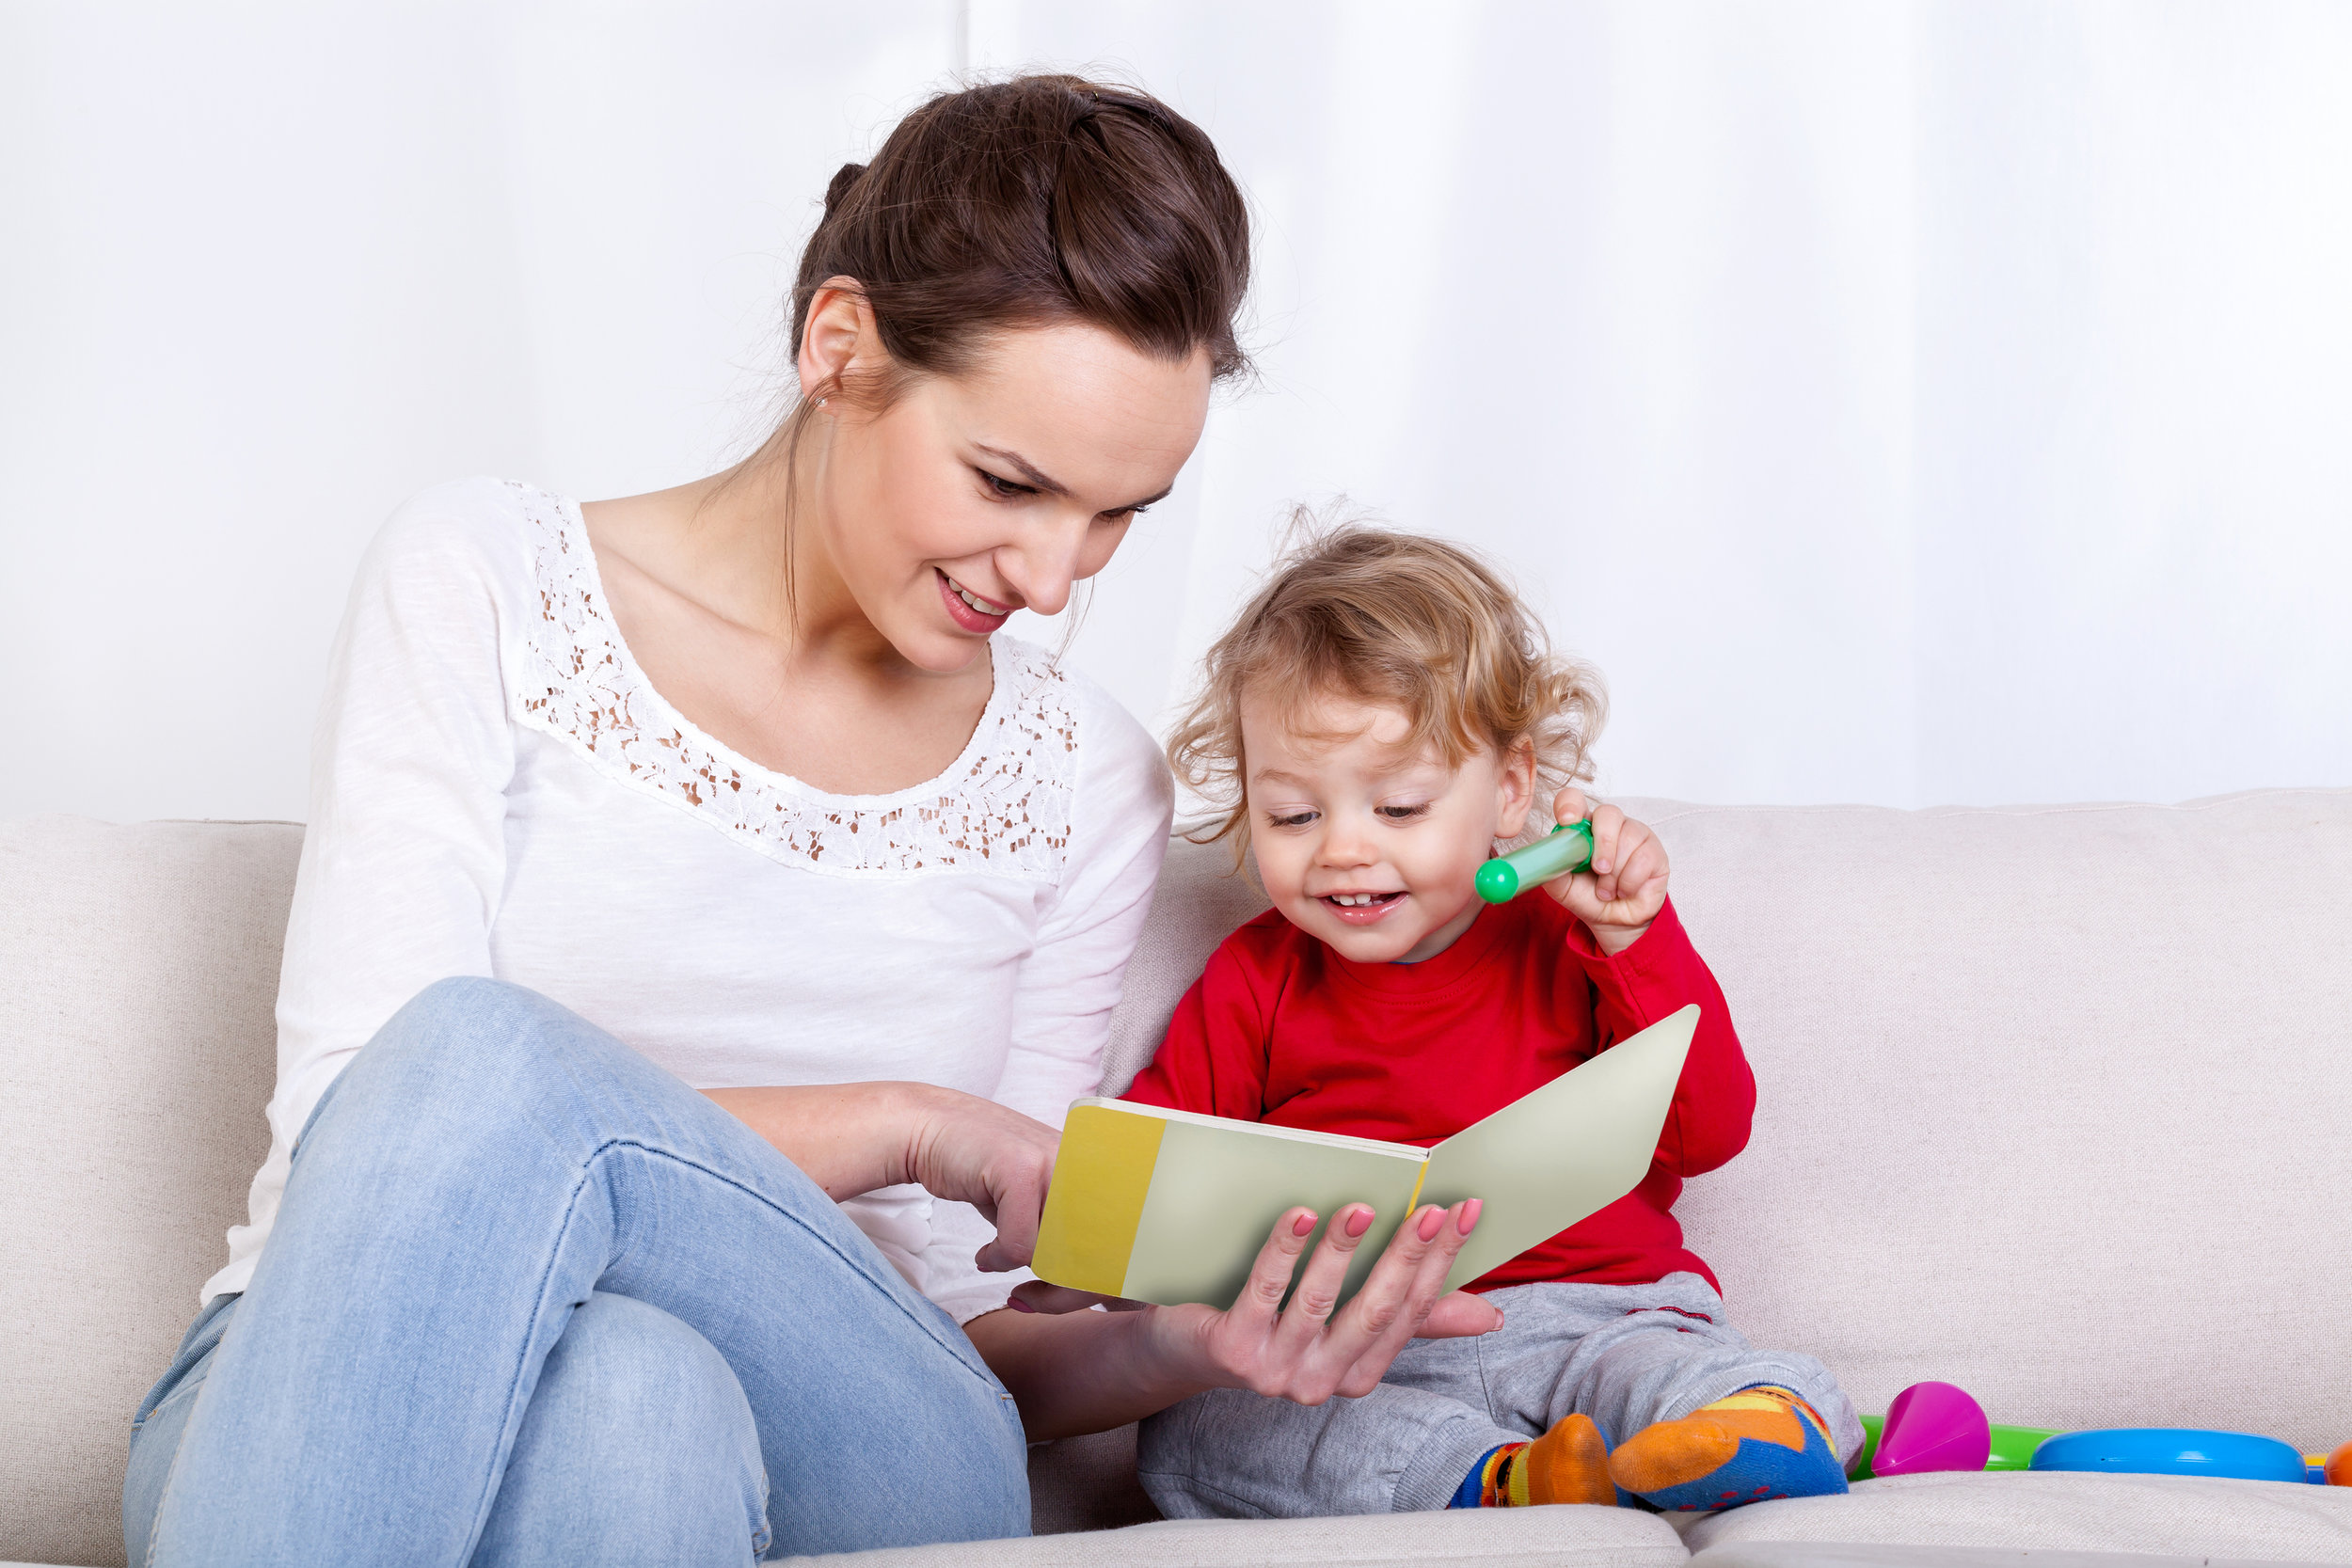 Encourage your child to talk